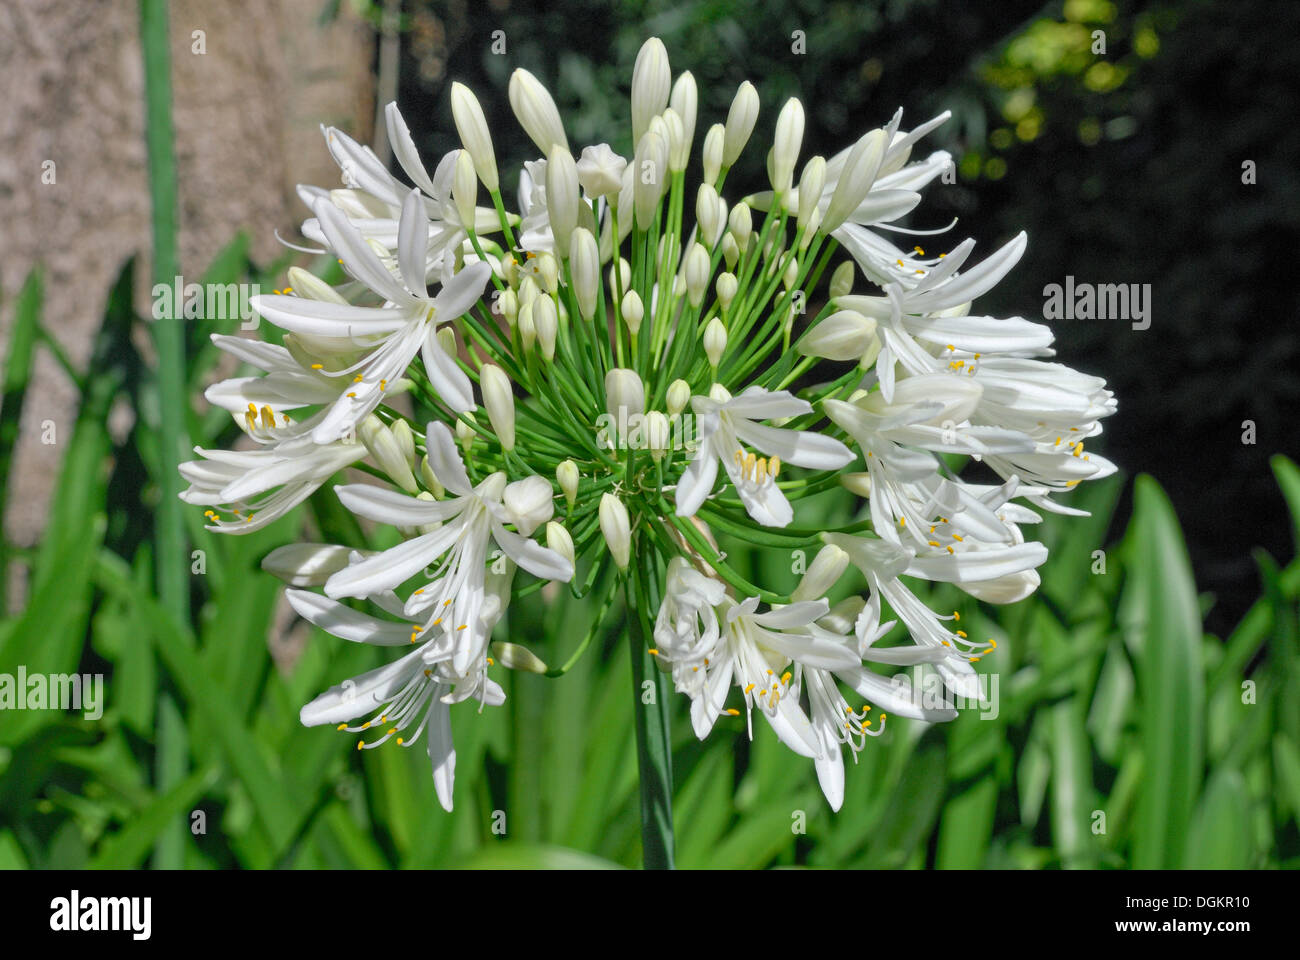 Lily of the nile agapanthus sp christchurch new zealand stock lily of the nile agapanthus sp christchurch new zealand izmirmasajfo Images